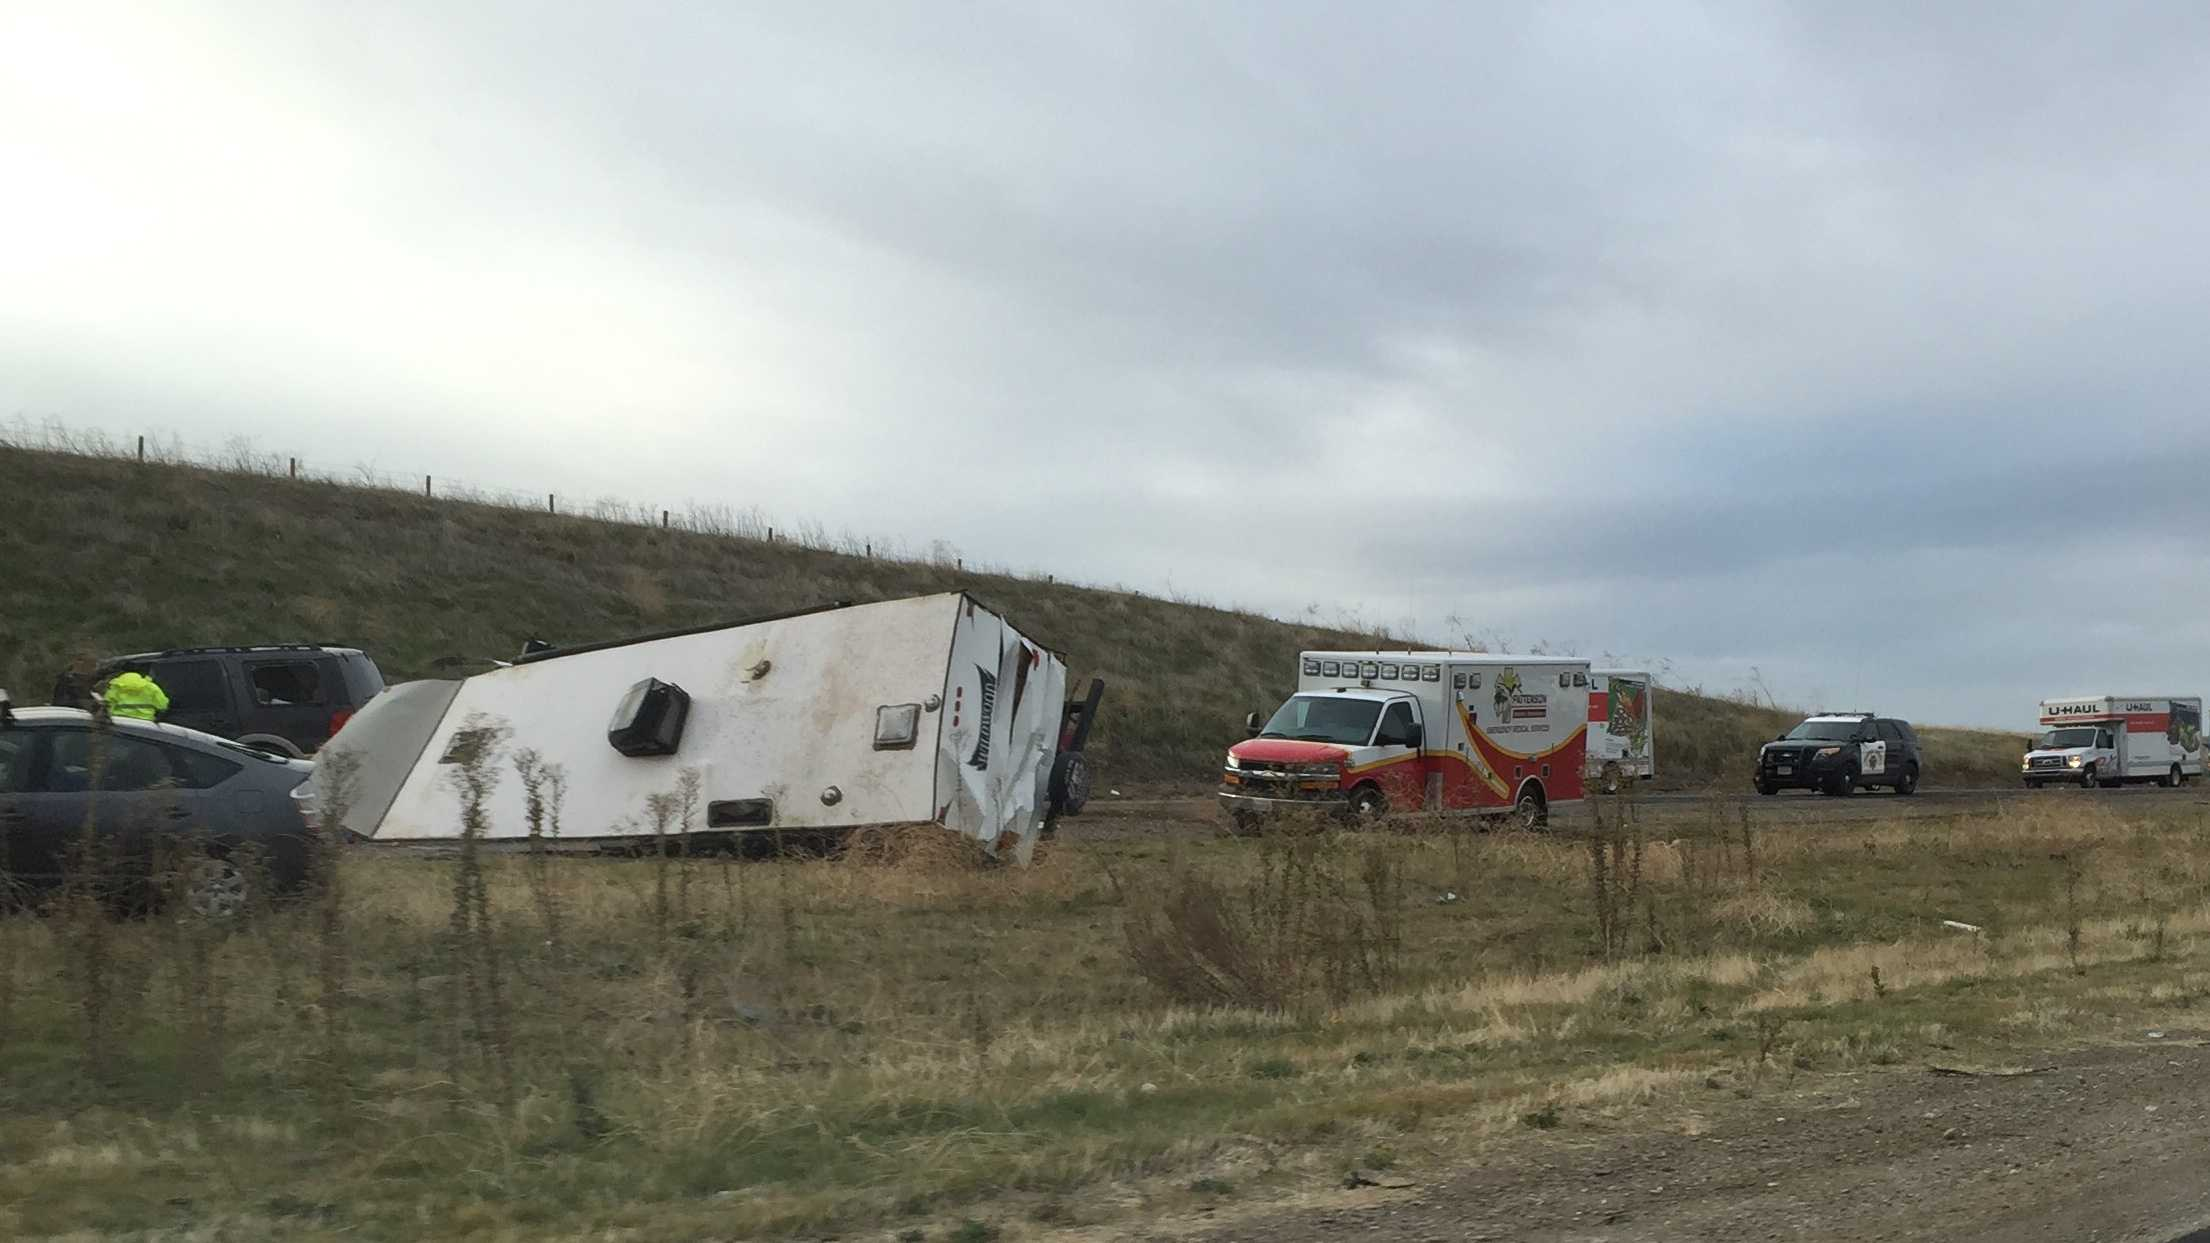 CHP and paramedics at the scene of an overturned RV on I-5 near Patterson Sunday. (Dec. 20, 2015)